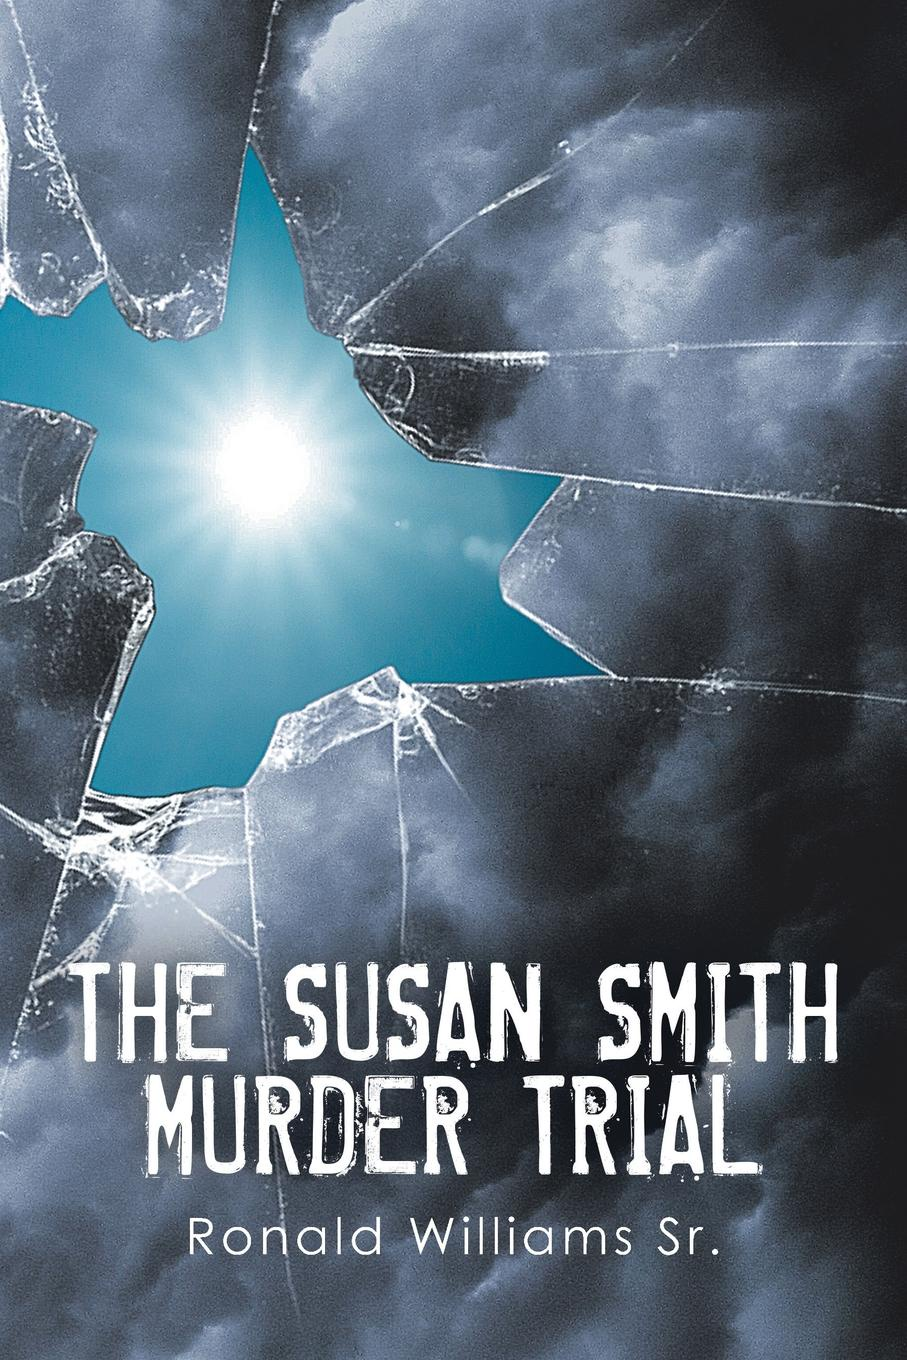 Ronald Williams Sr. THE SUSAN SMITH MURDER TRIAL. WHY SUSAN, WHY?